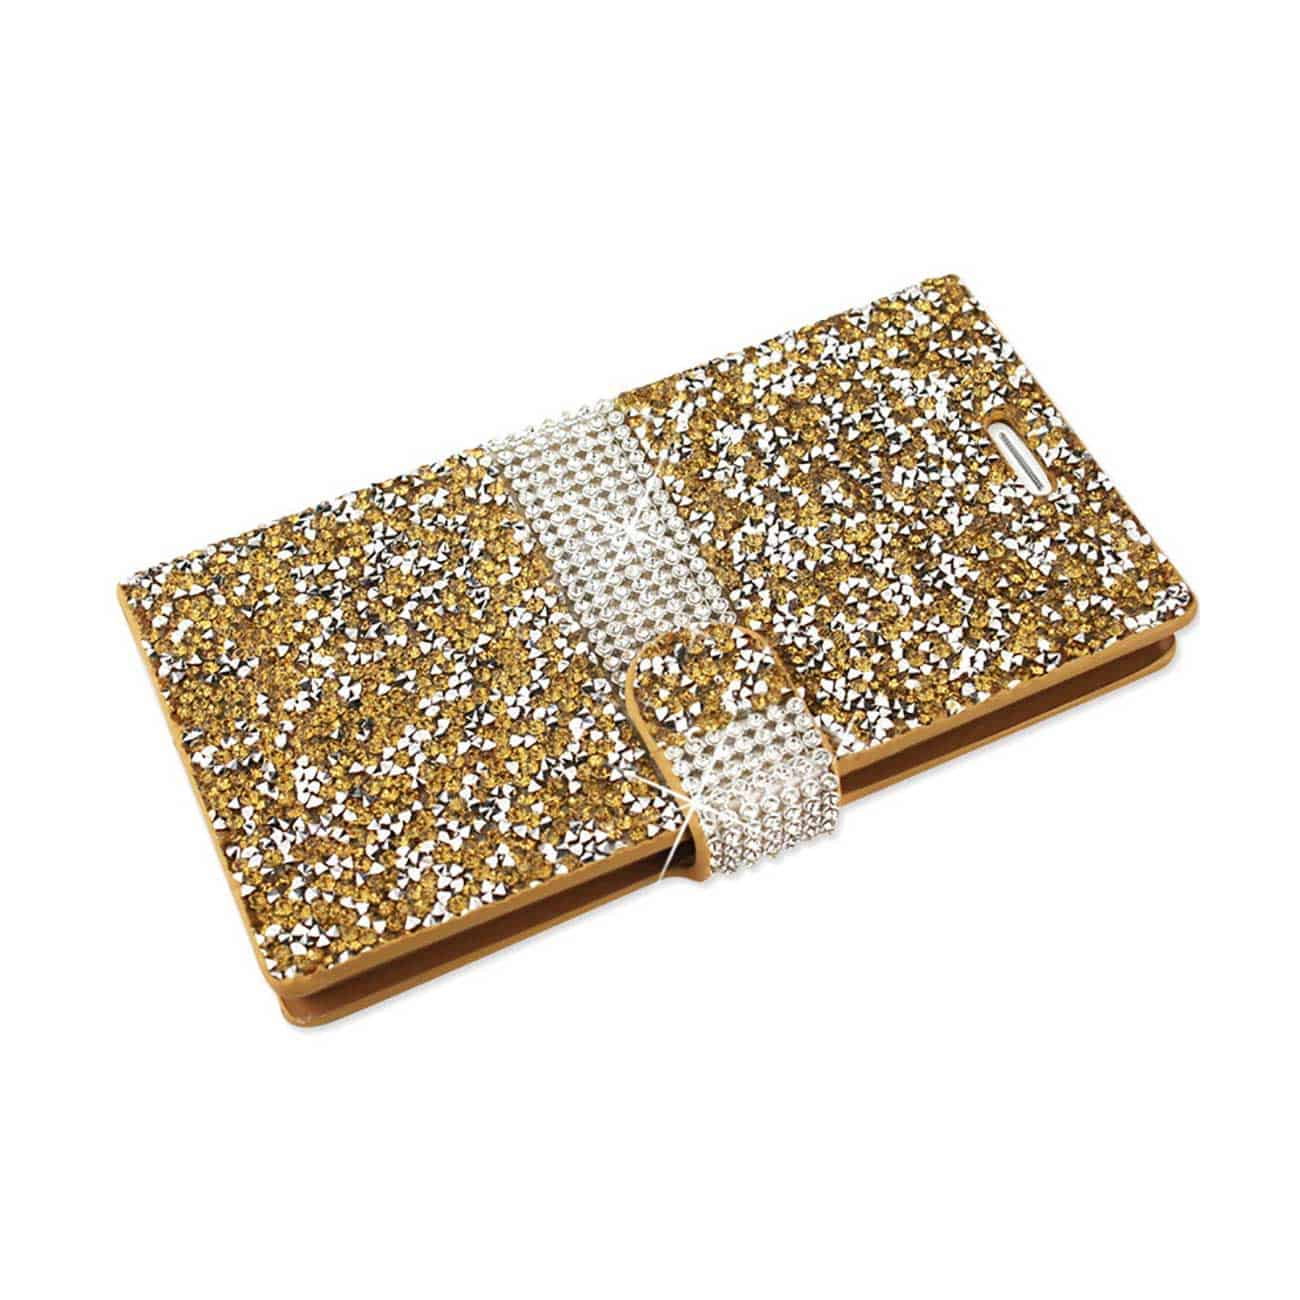 LG V10 JEWELRY RHINESTONE WALLET CASE IN GOLD